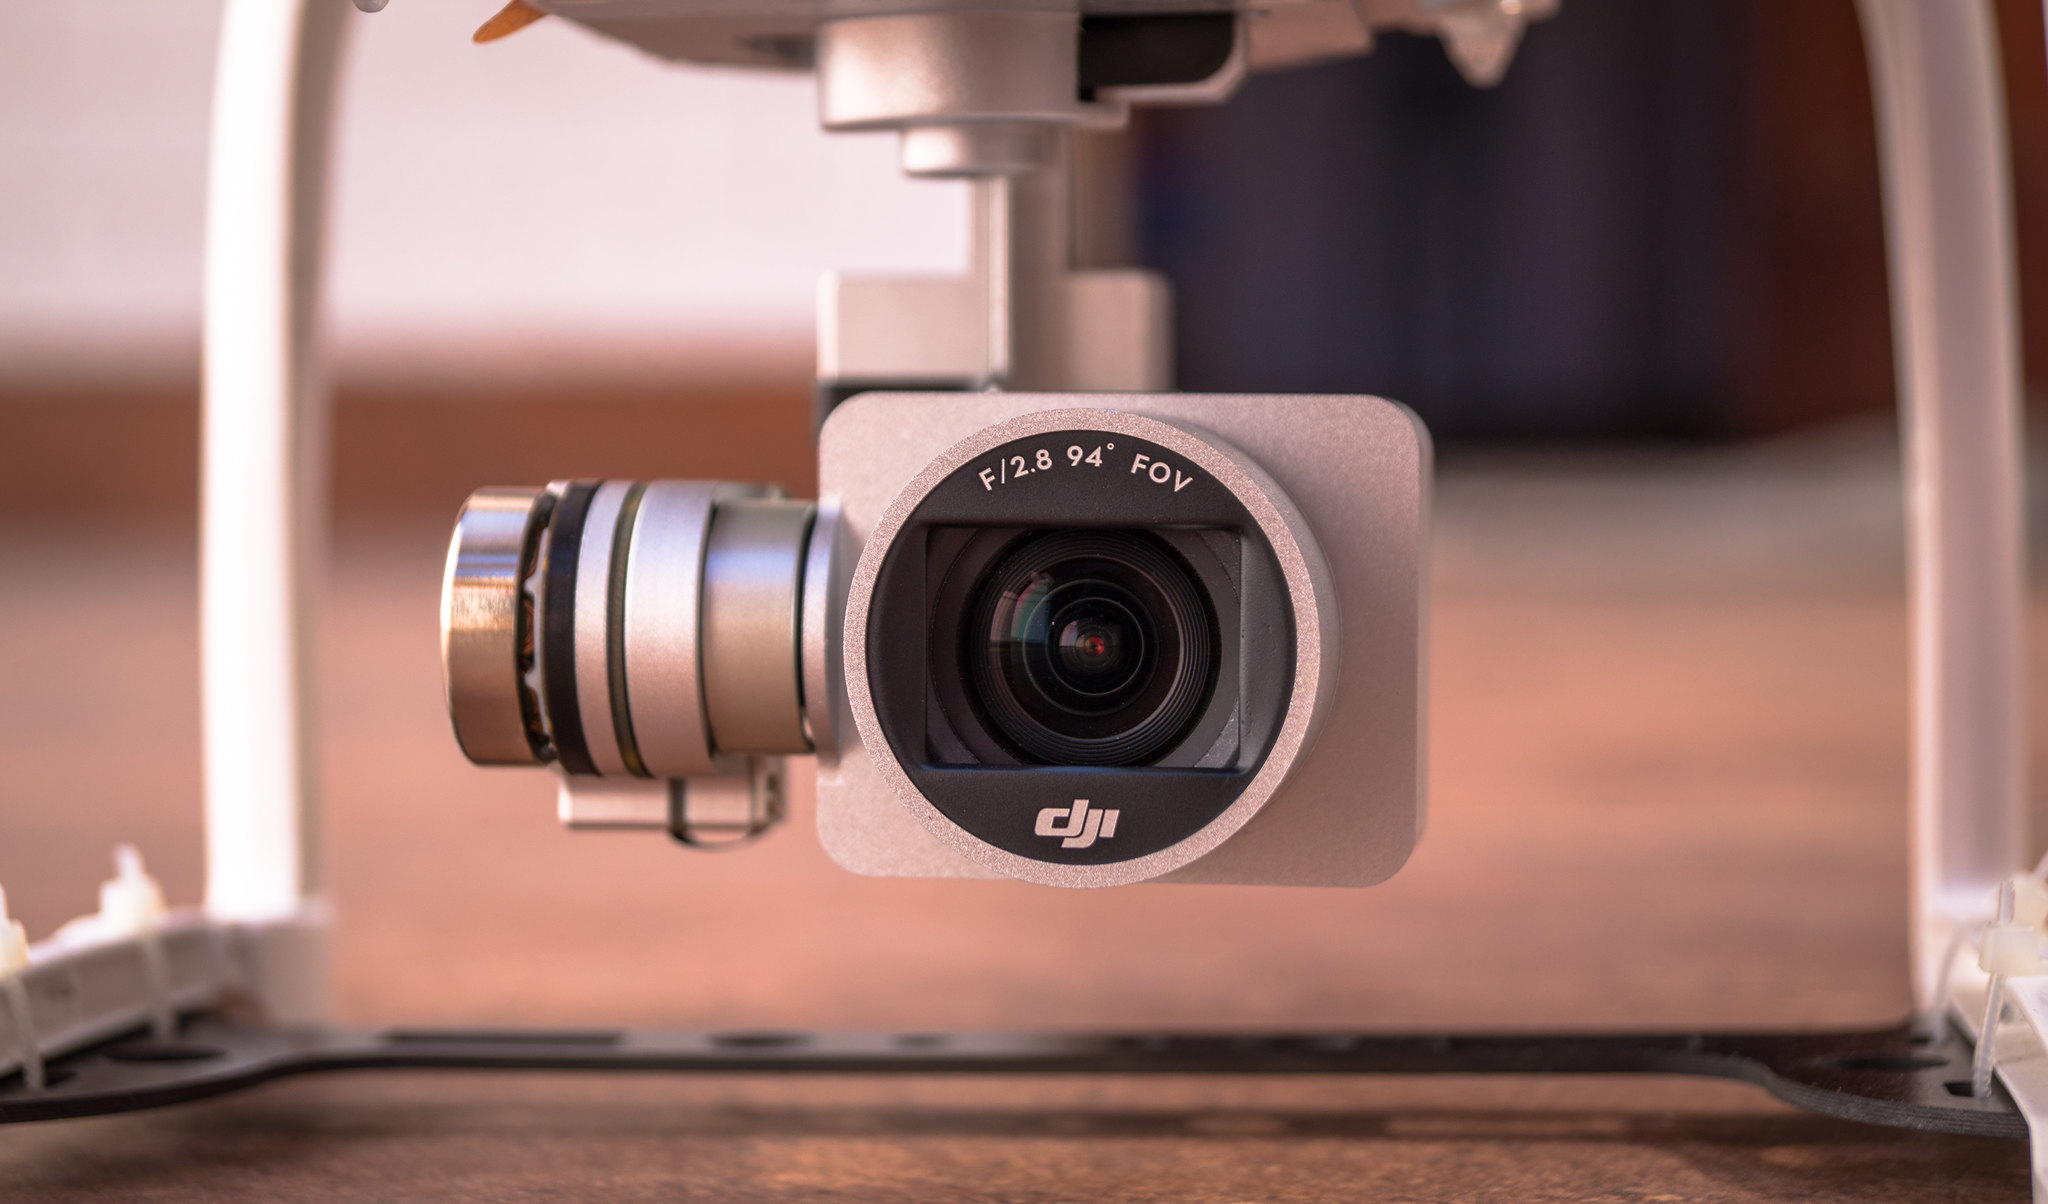 Check-the-condition-of-the-camera-and-gimbal